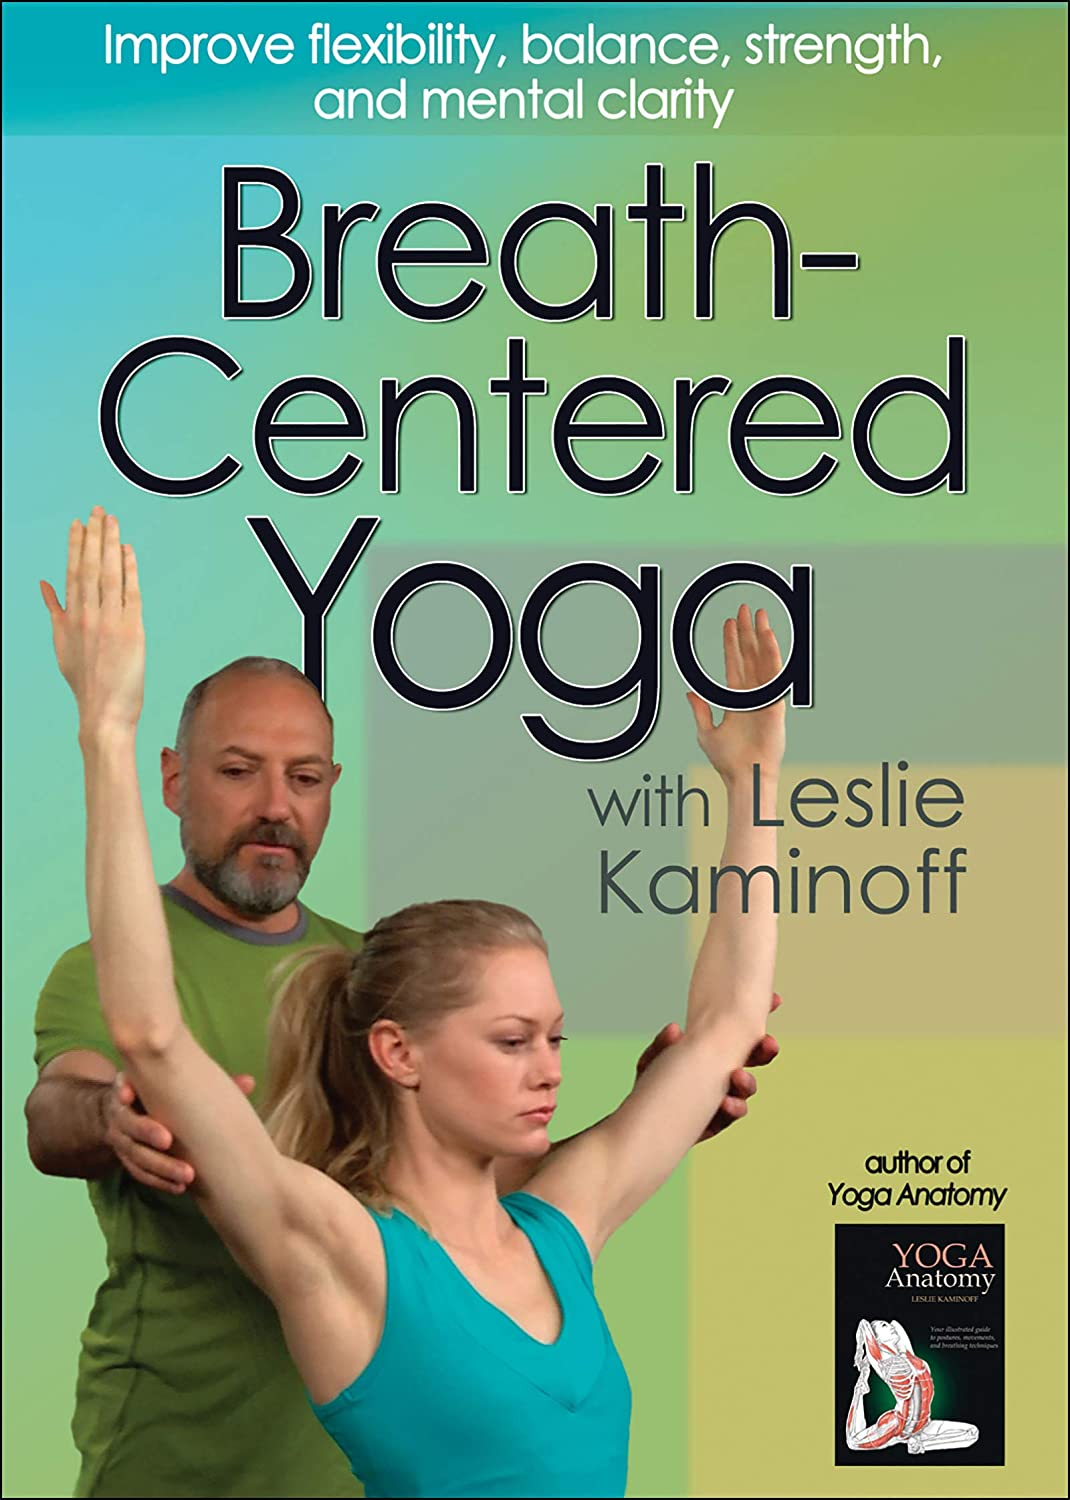 Amazon.com: Breath-Centered Yoga with Leslie Kaminoff ...